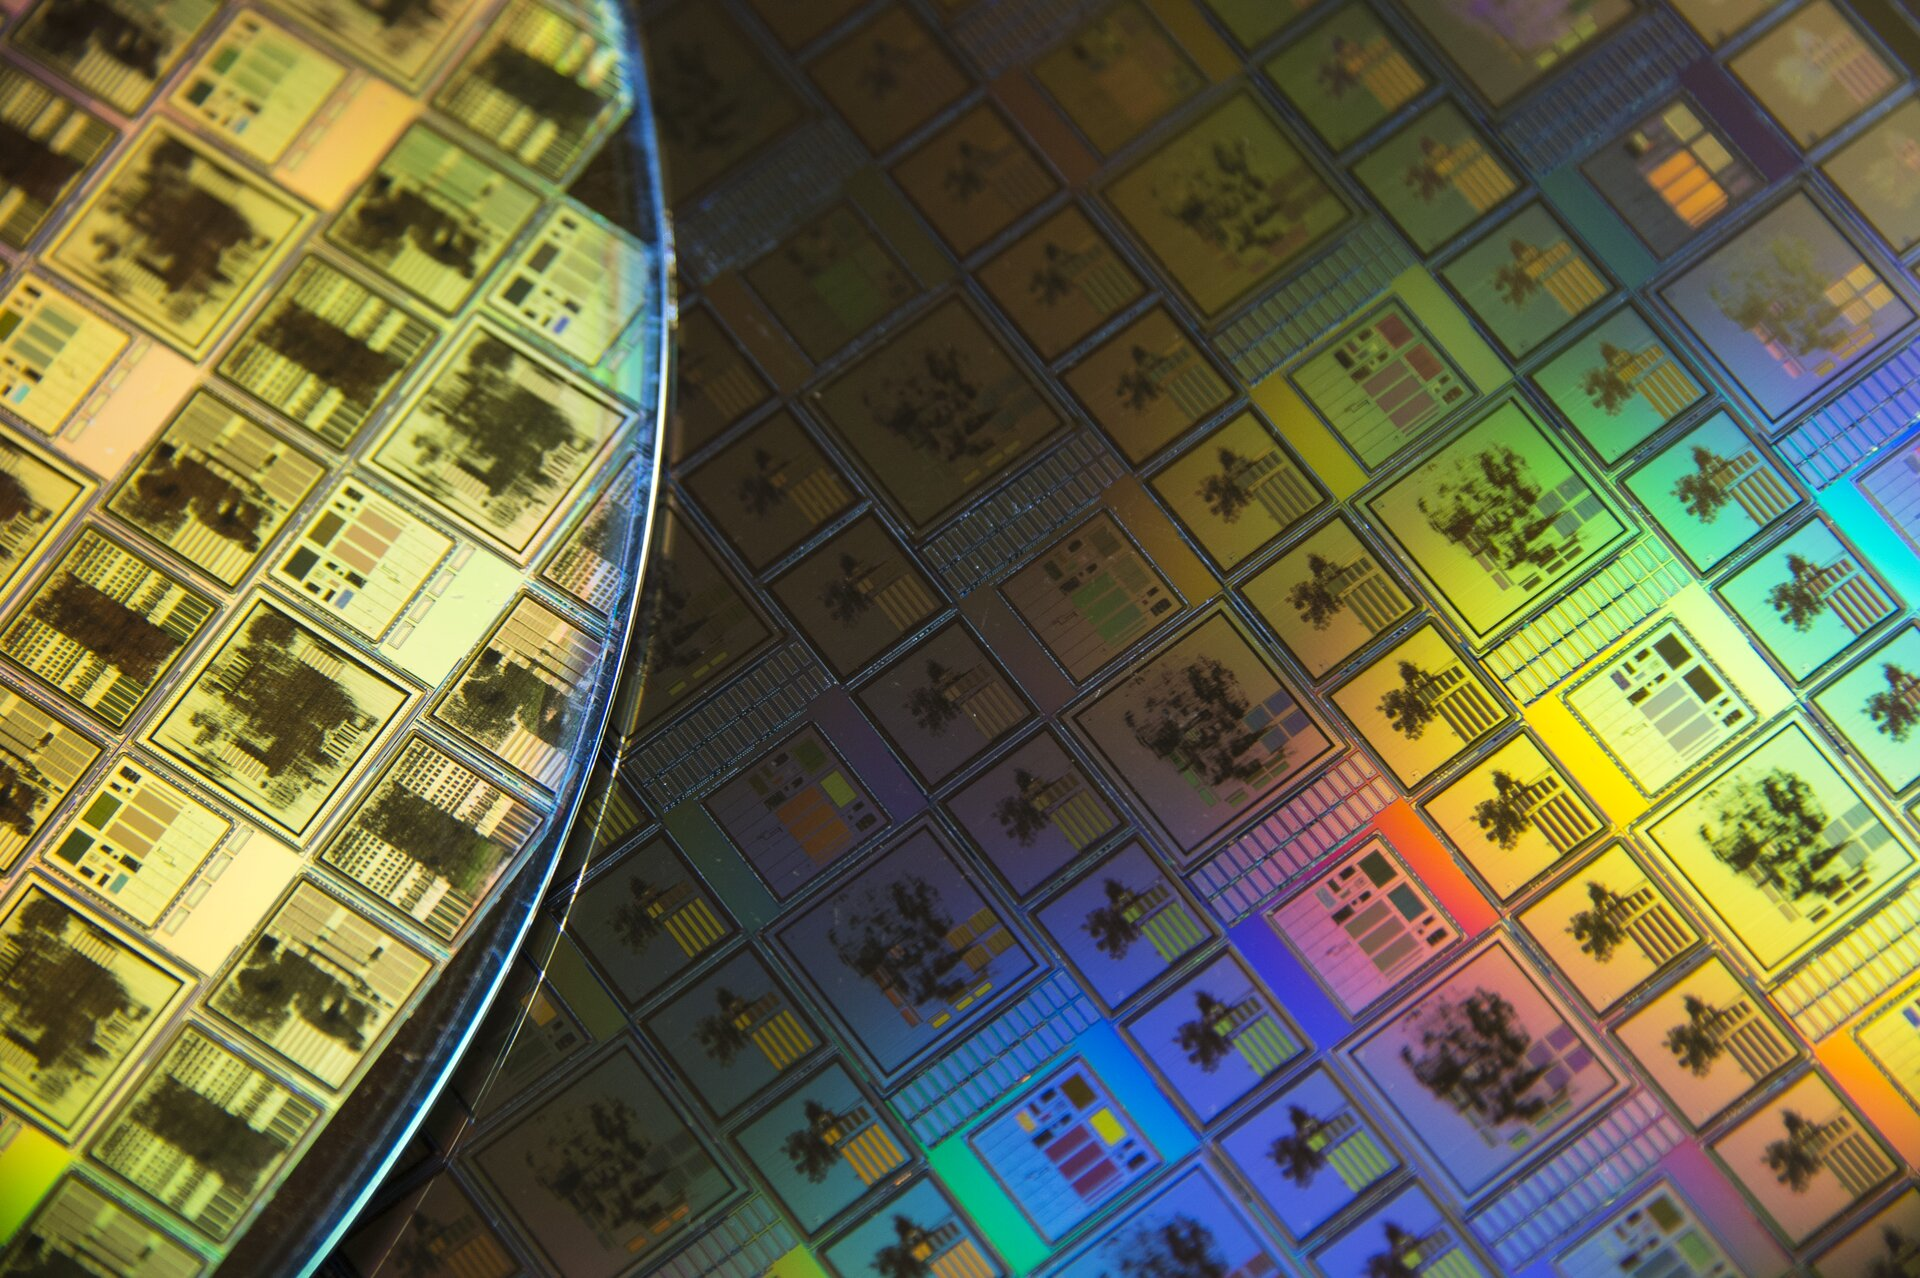 Space chips etched in silicon